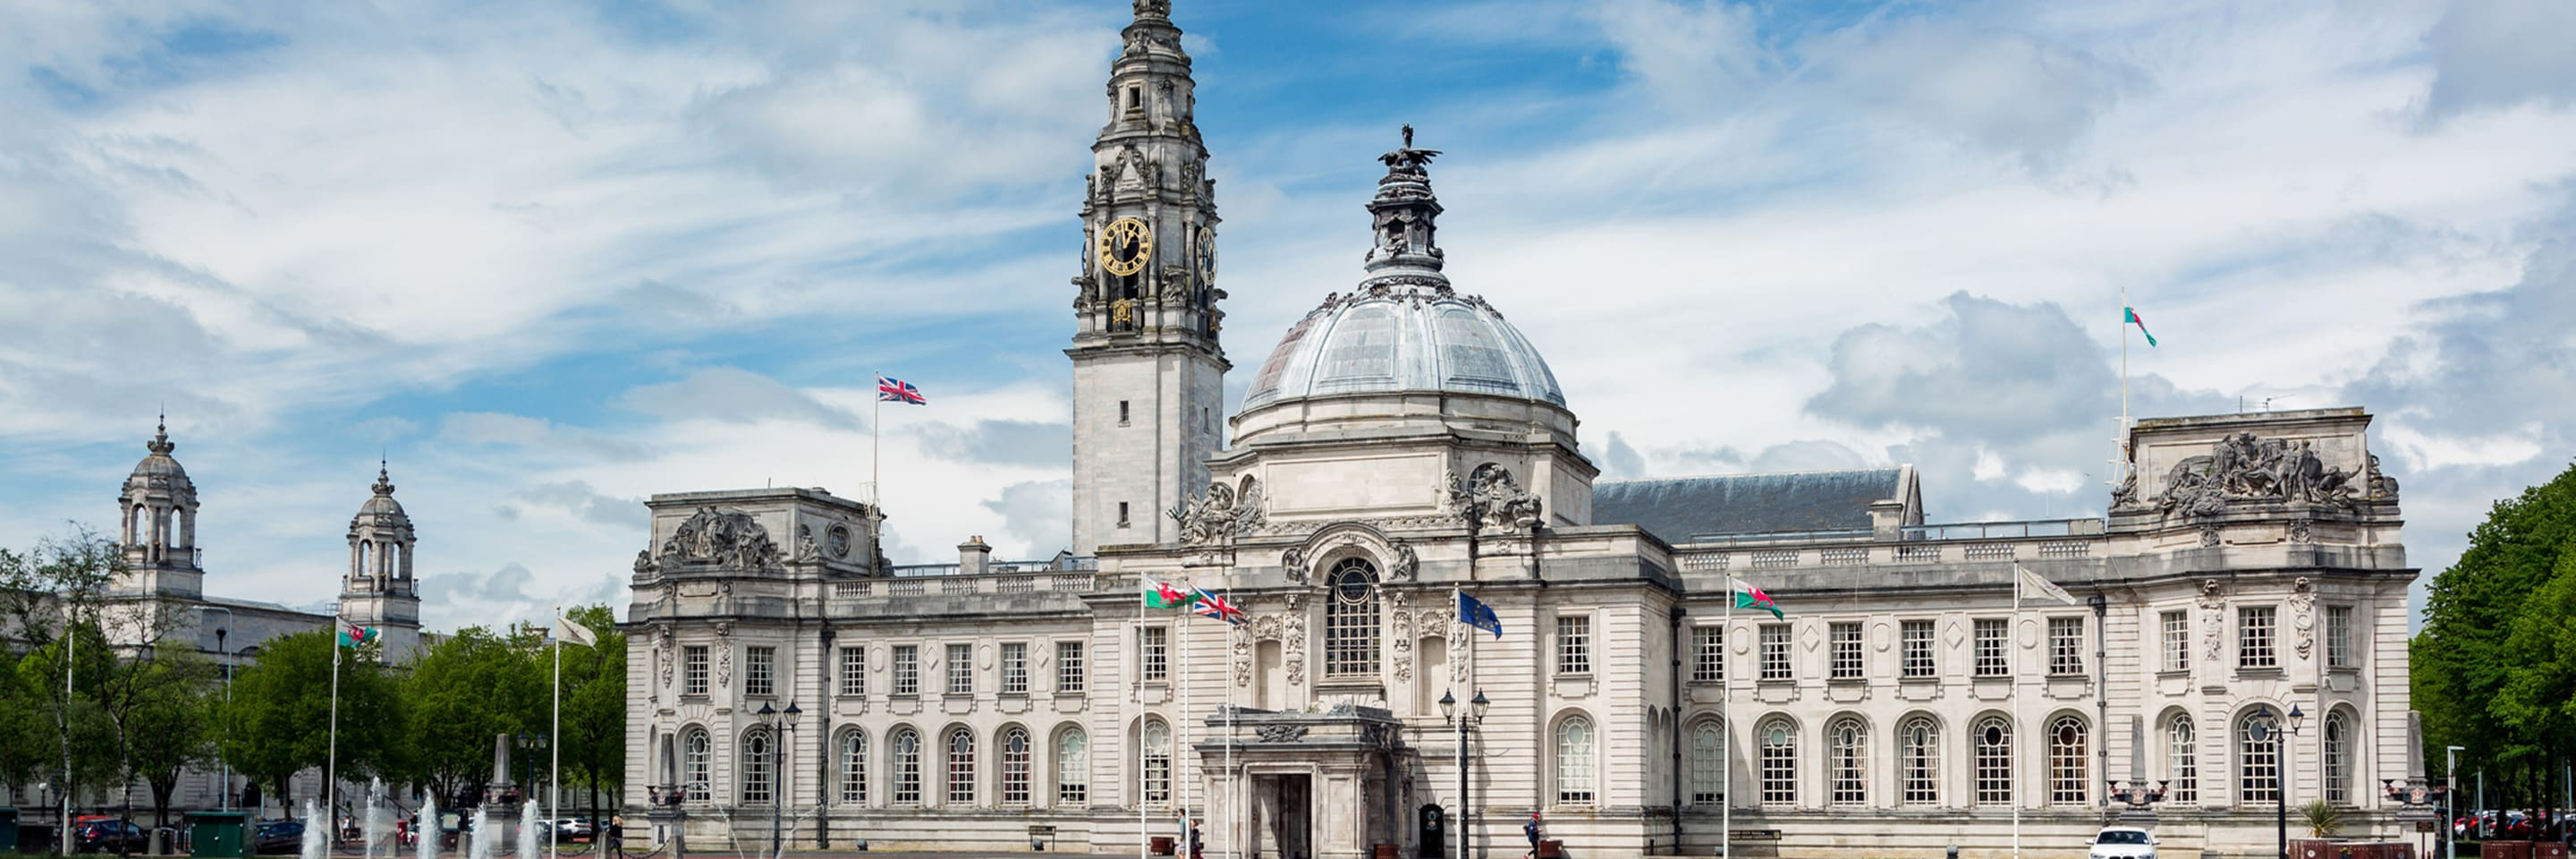 Hotels in Cardiff